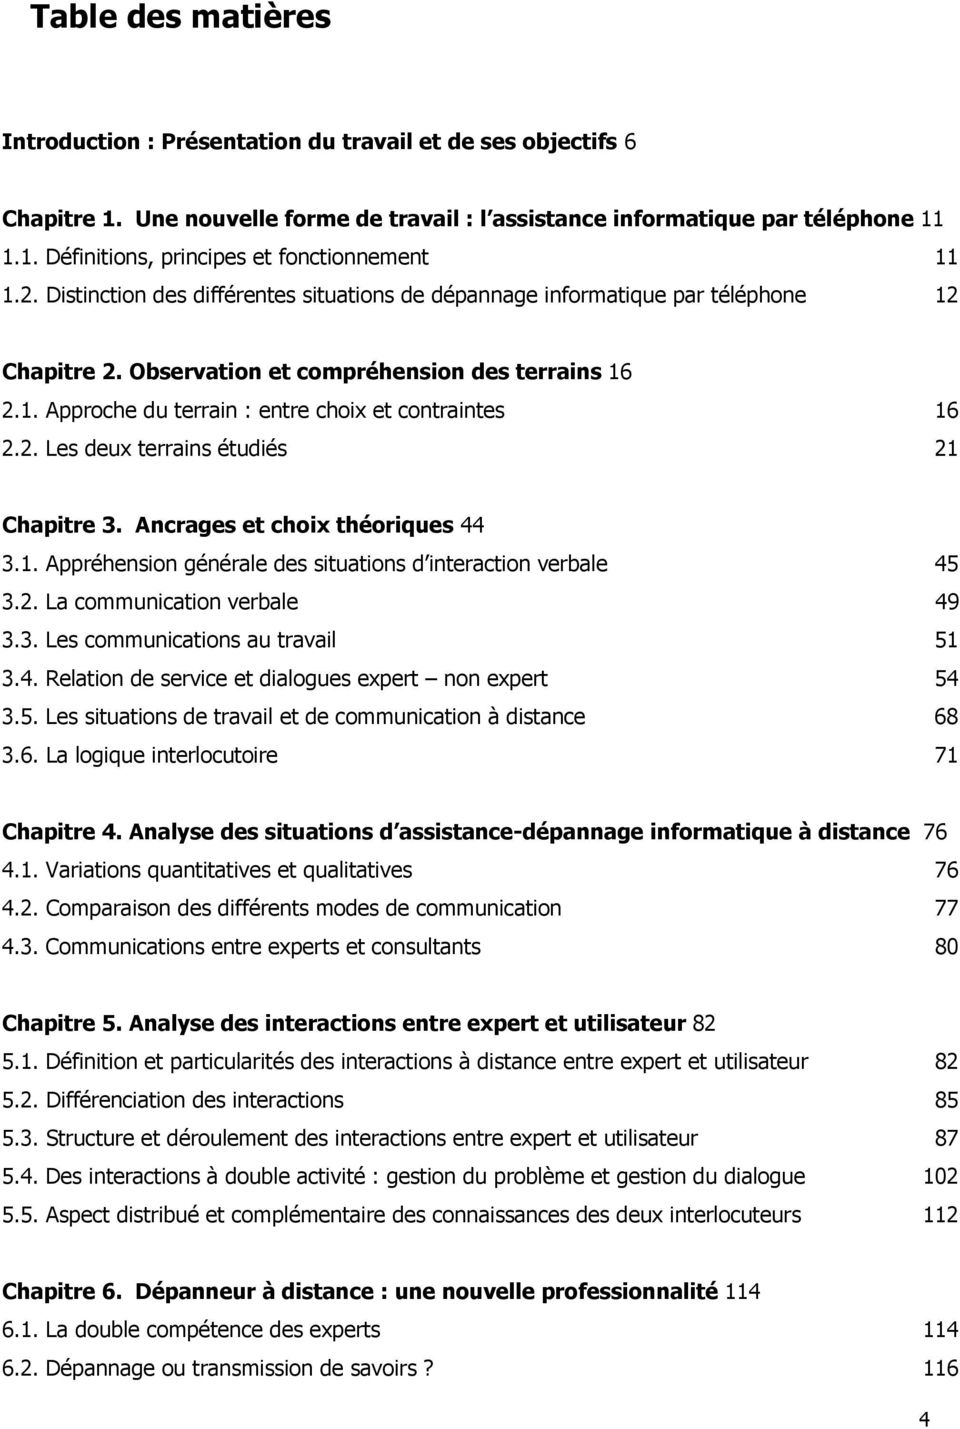 2. Les deux terrains étudiés 21 Chapitre 3. Ancrages et choix théoriques 44 3.1. Appréhension générale des situations d interaction verbale 45 3.2. La communication verbale 49 3.3. Les communications au travail 51 3.